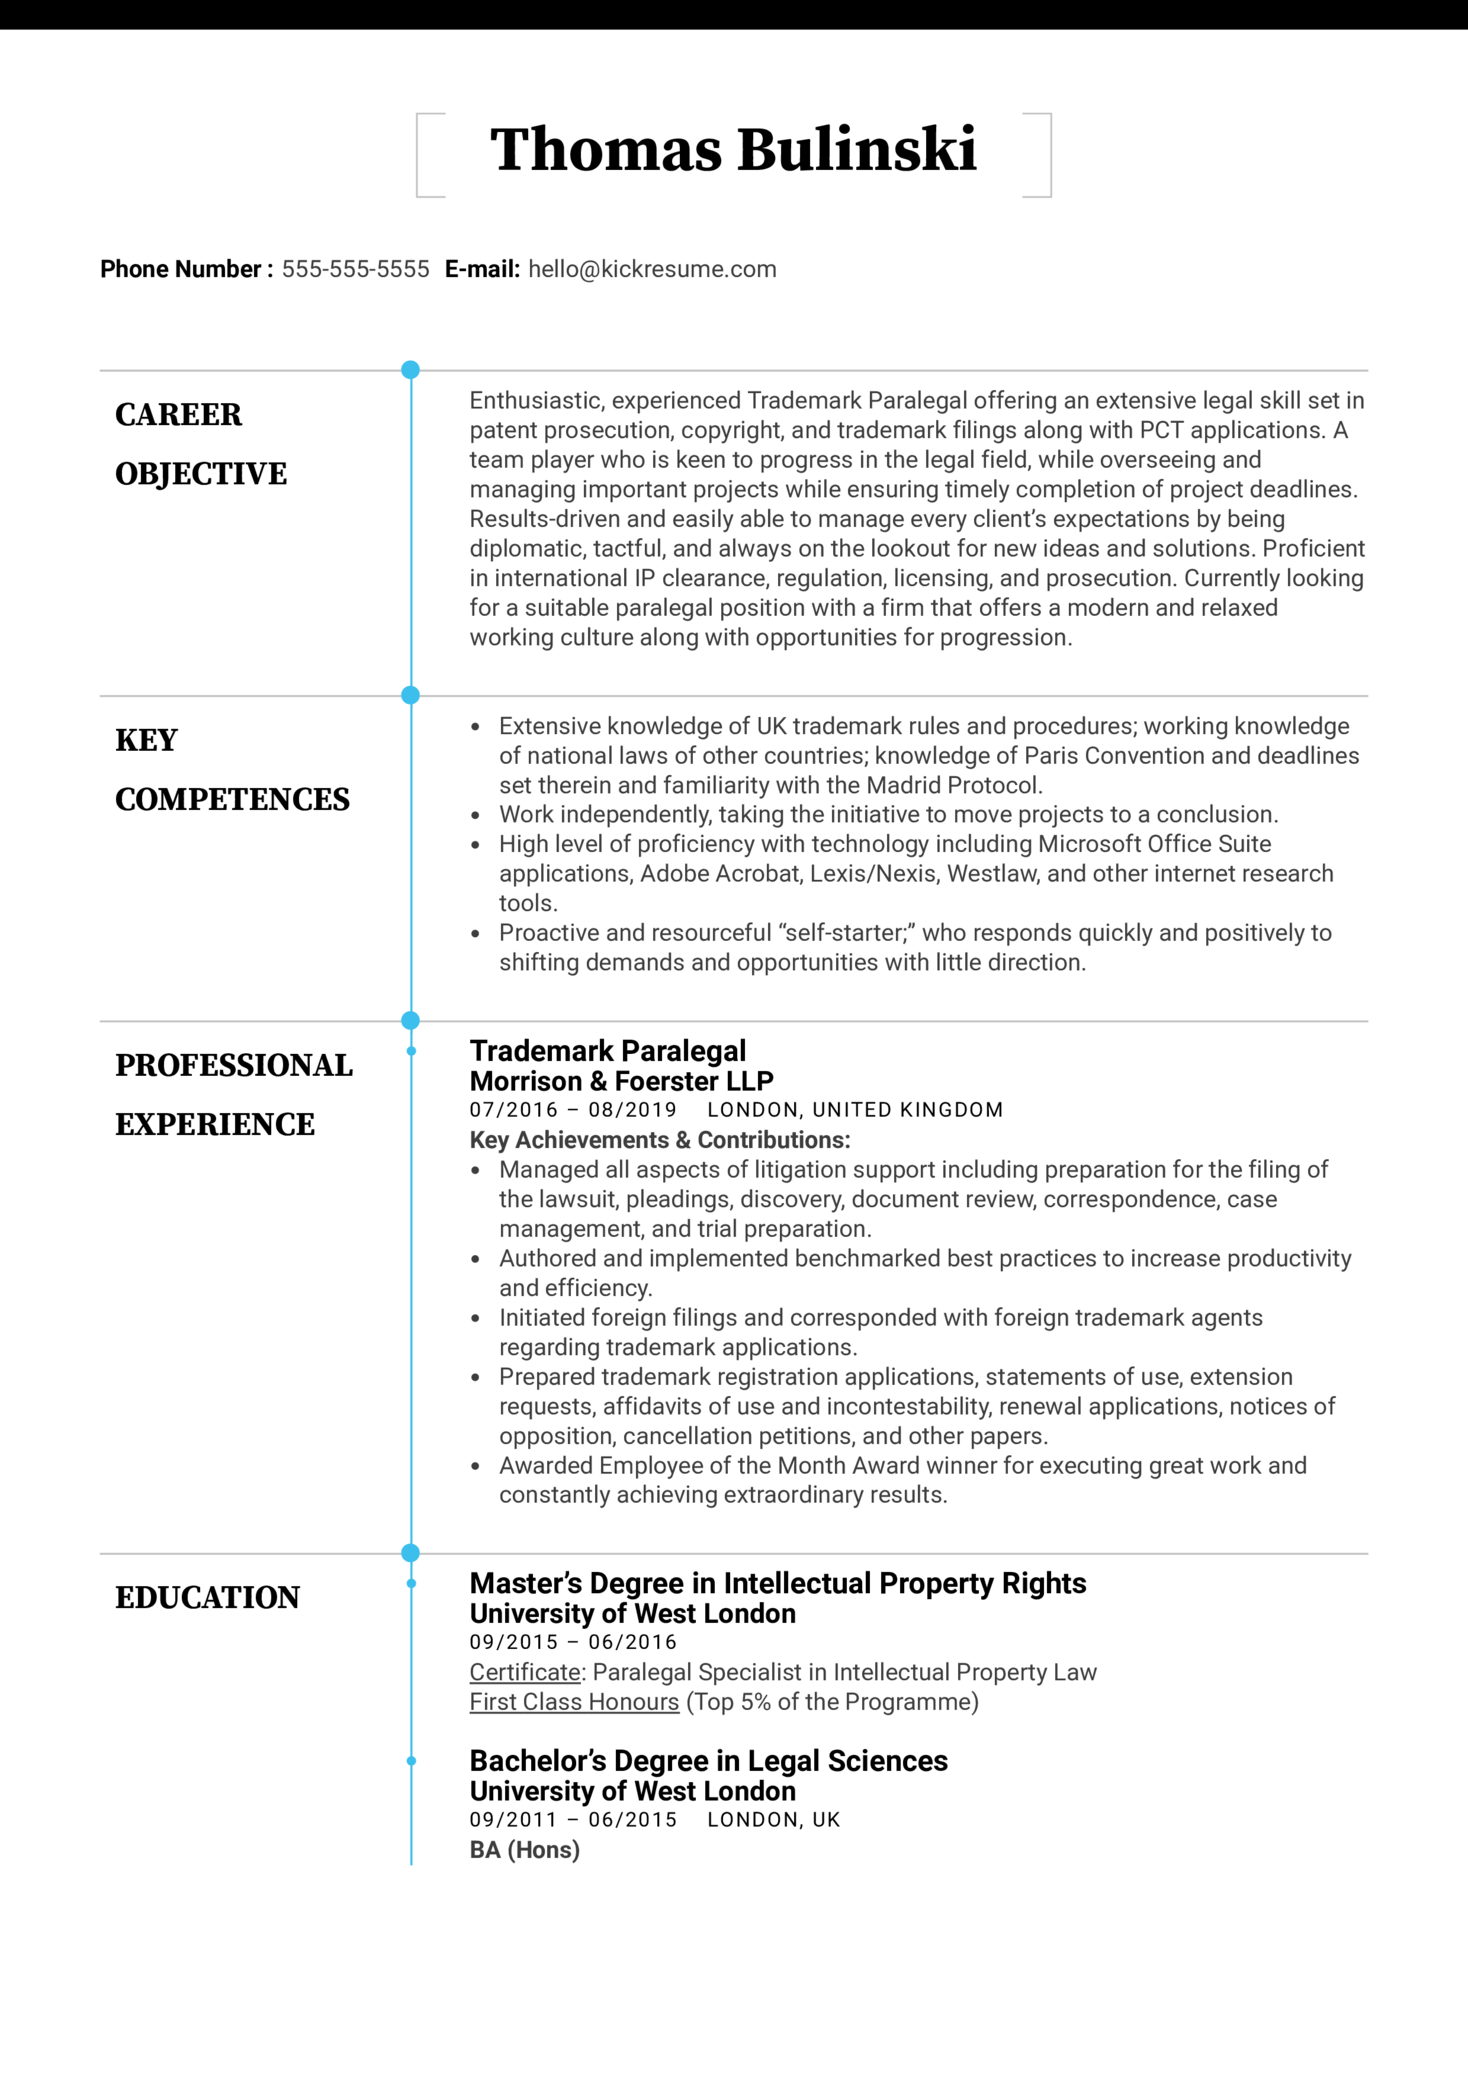 Trademark Paralegal Resume Sample (Part 1)